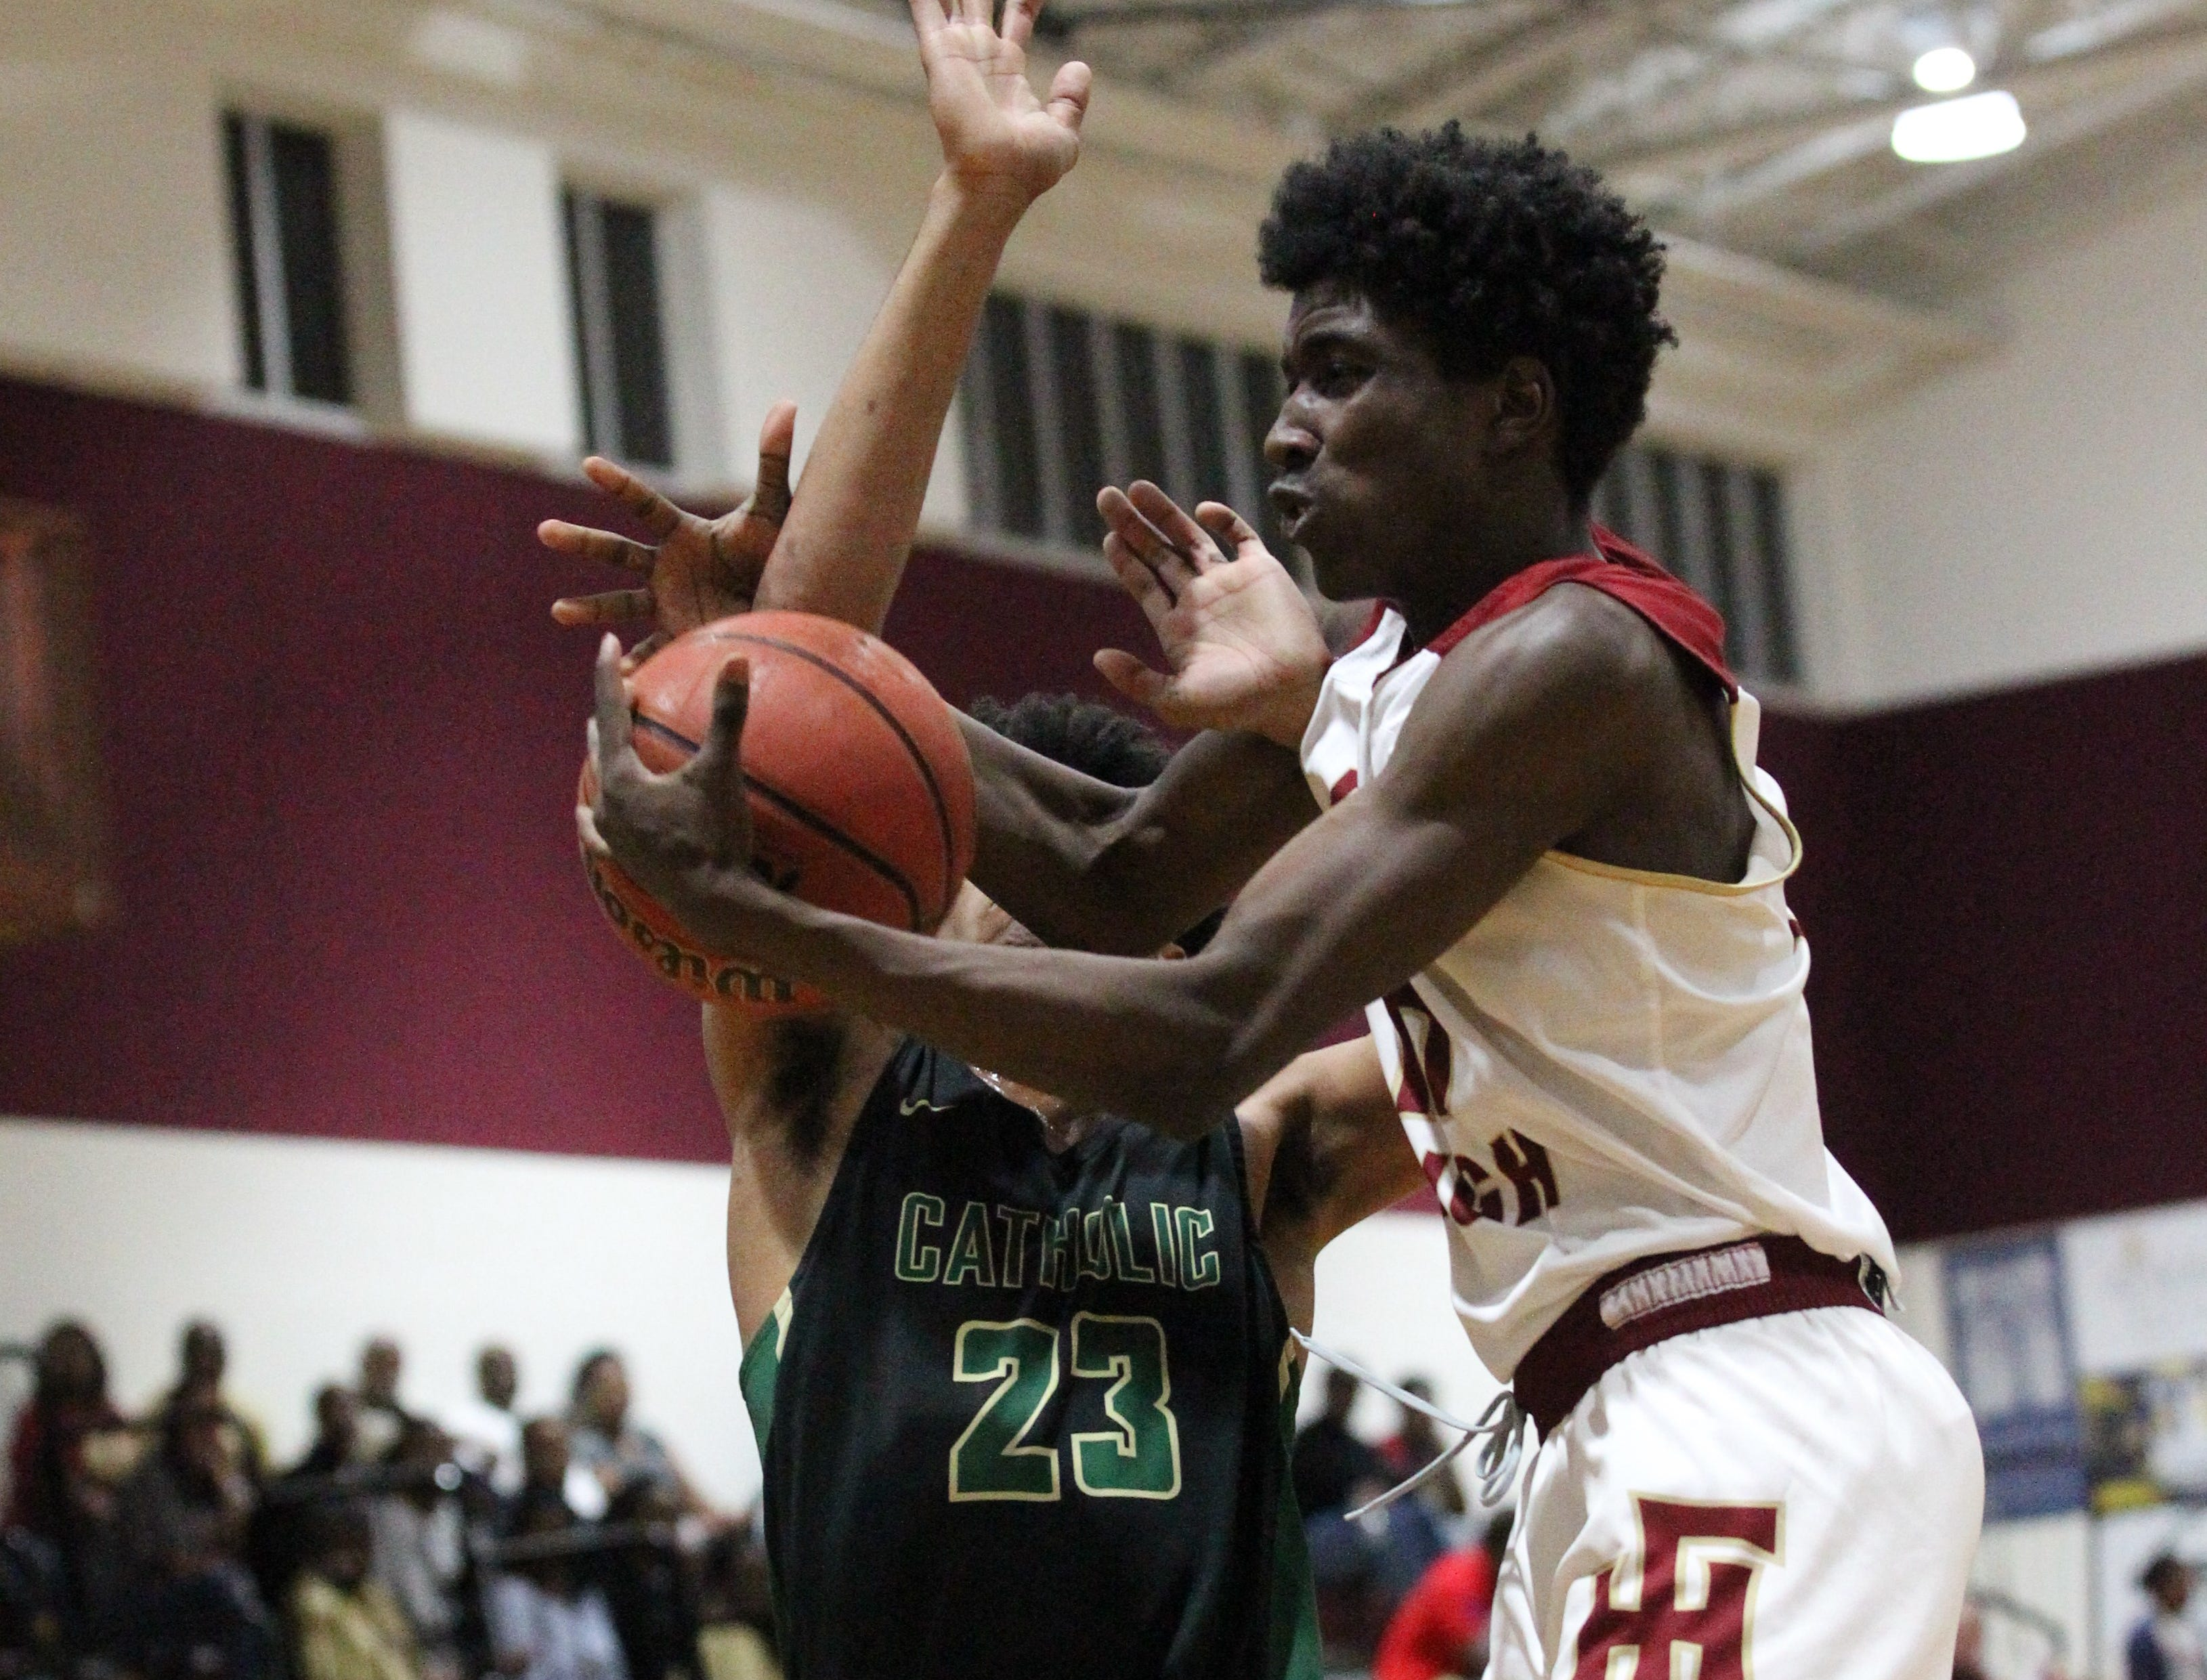 Florida High senior Myles Hopkins grabs a rebound before Pensacola Catholic's Nitrell Bledsoe as the Seminoles beat the Crusaders 47-42 during a Region 1-5A quarterfinal on Feb. 21, 2019.